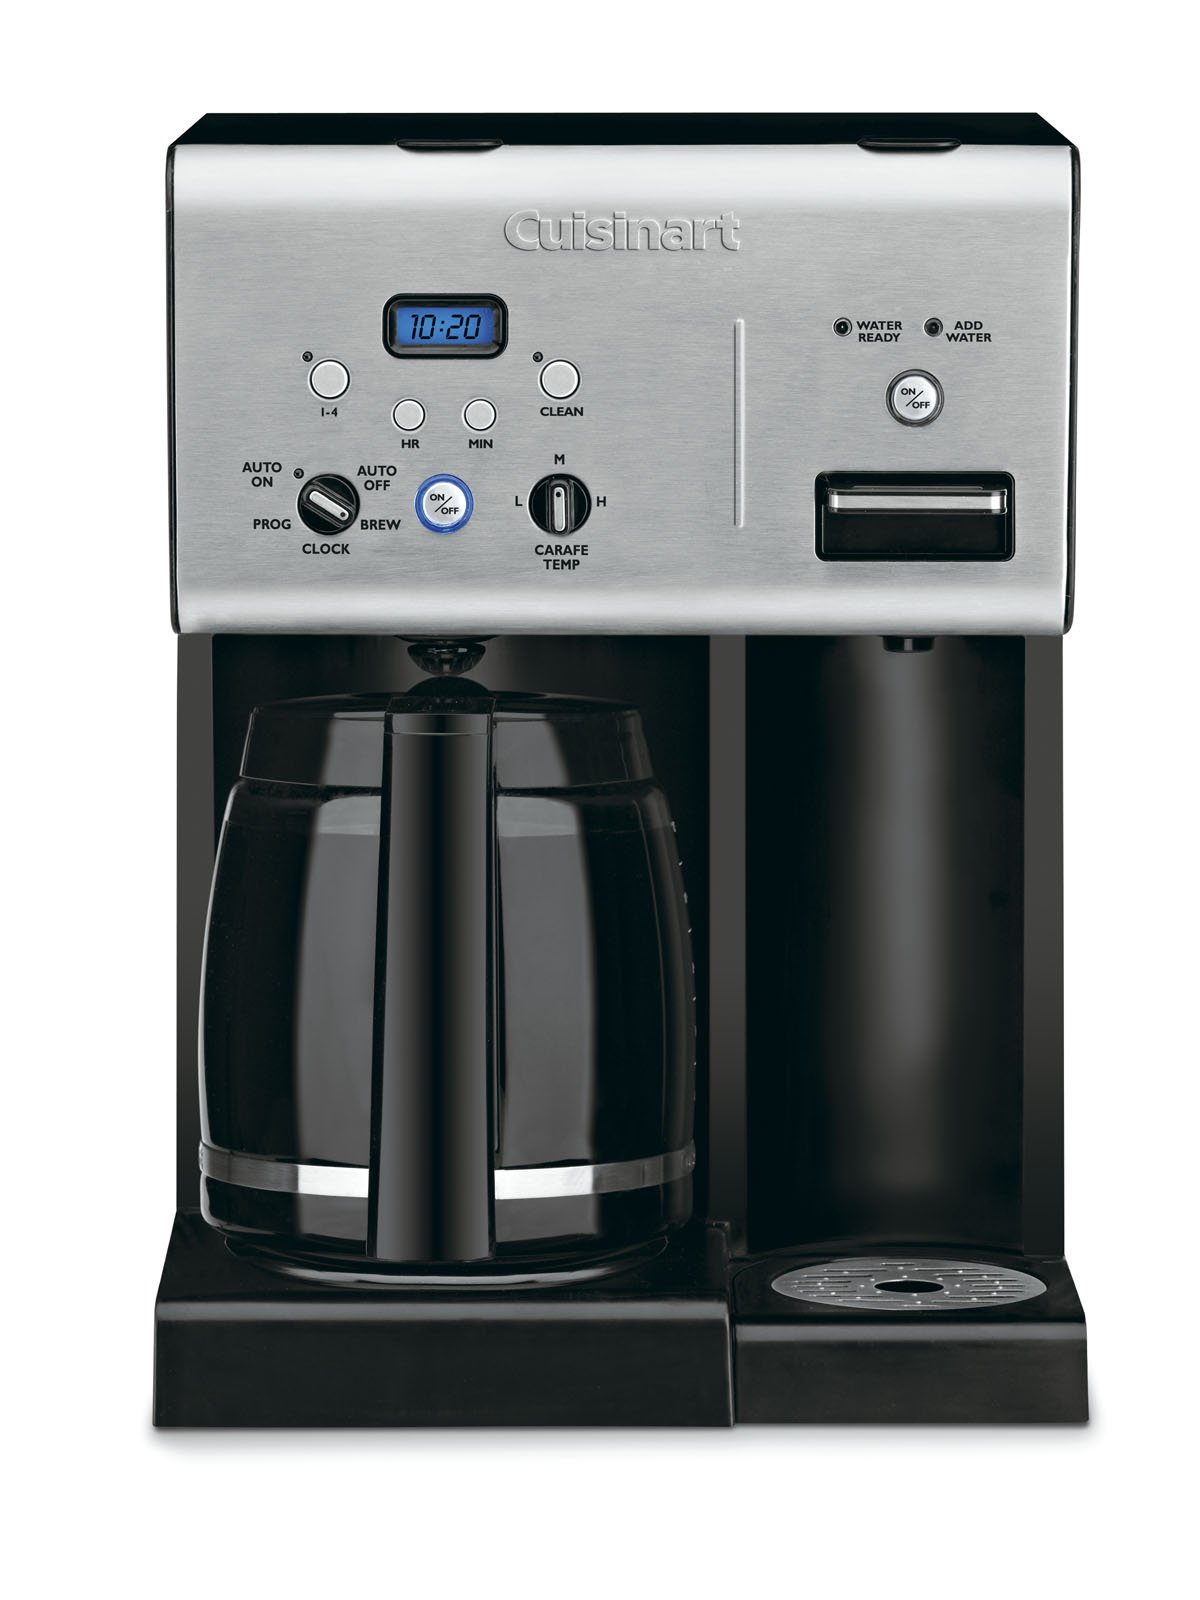 Cuisinart CHW-12 Coffee Plus 12-Cup Programmable Coffeemaker with Hot Water System, Black/Stainless by Cuisinart